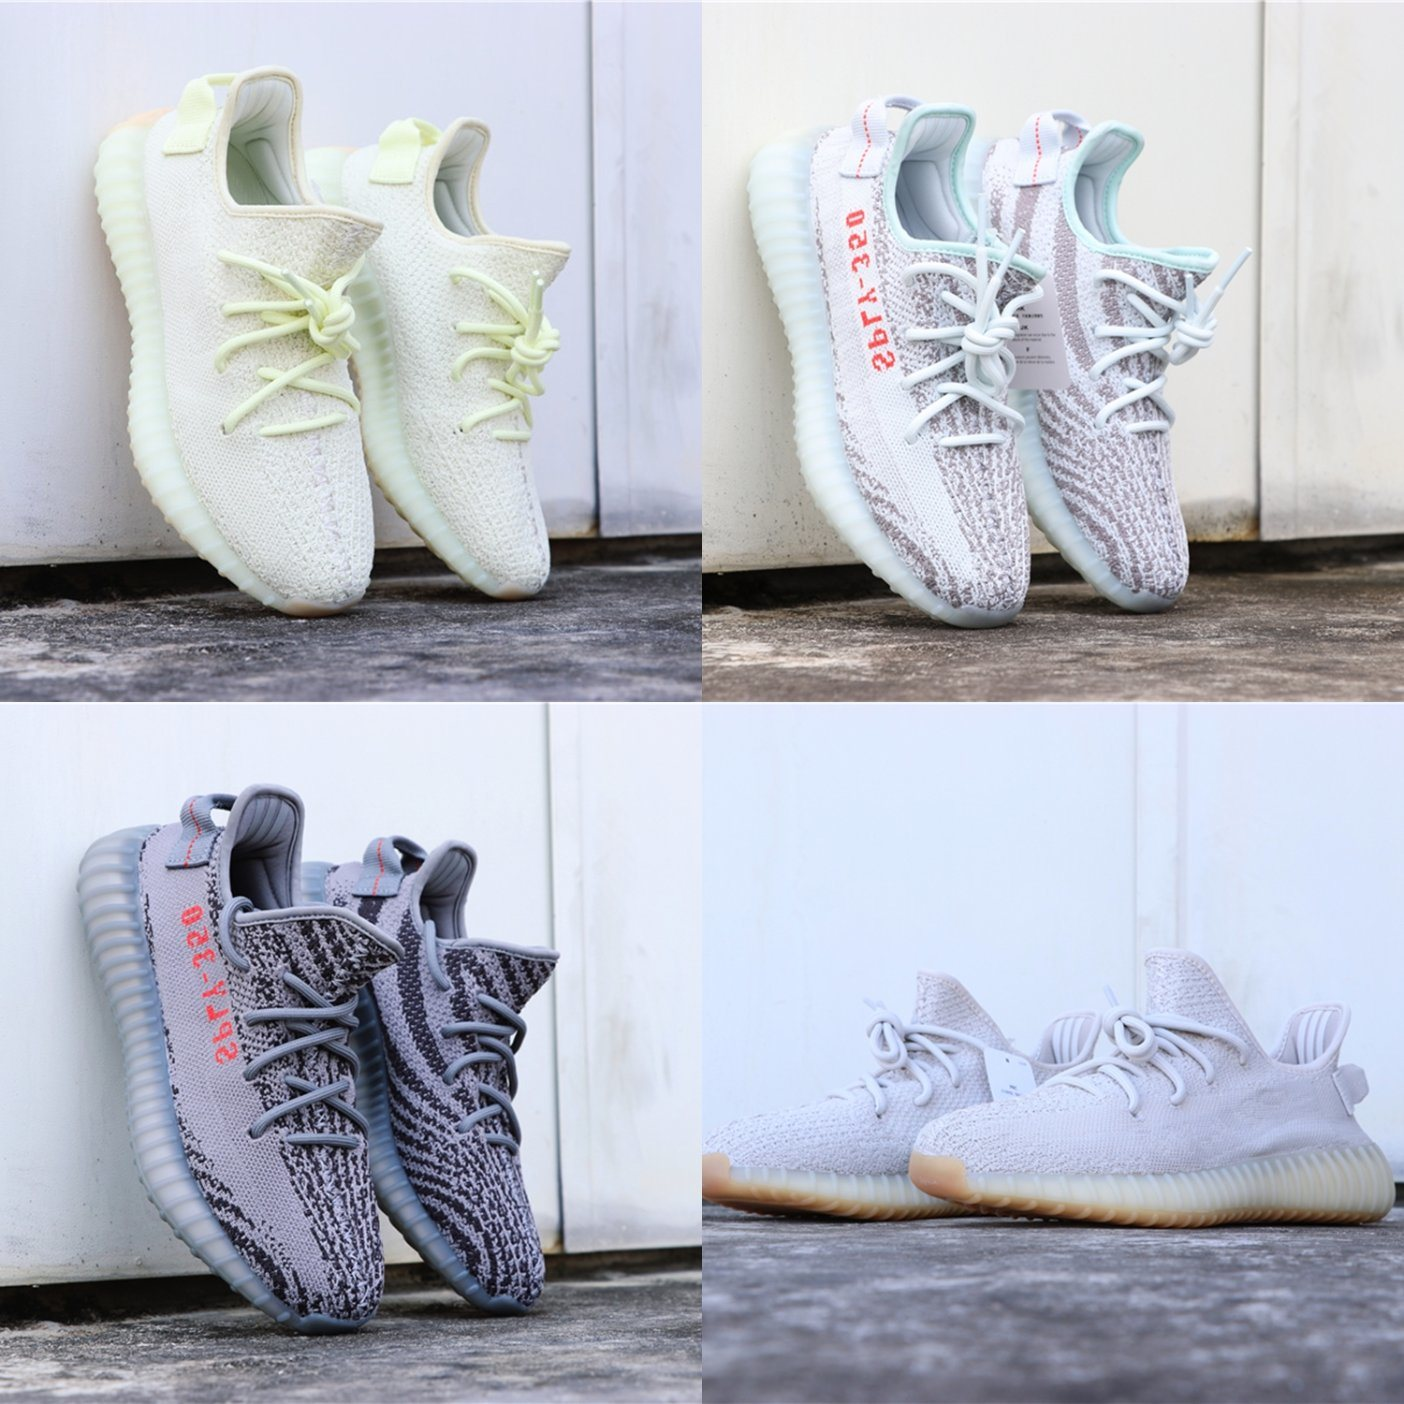 Cheapest Yeezys Ever Adidas Yeezy Boost 350 V2 Blue Tint